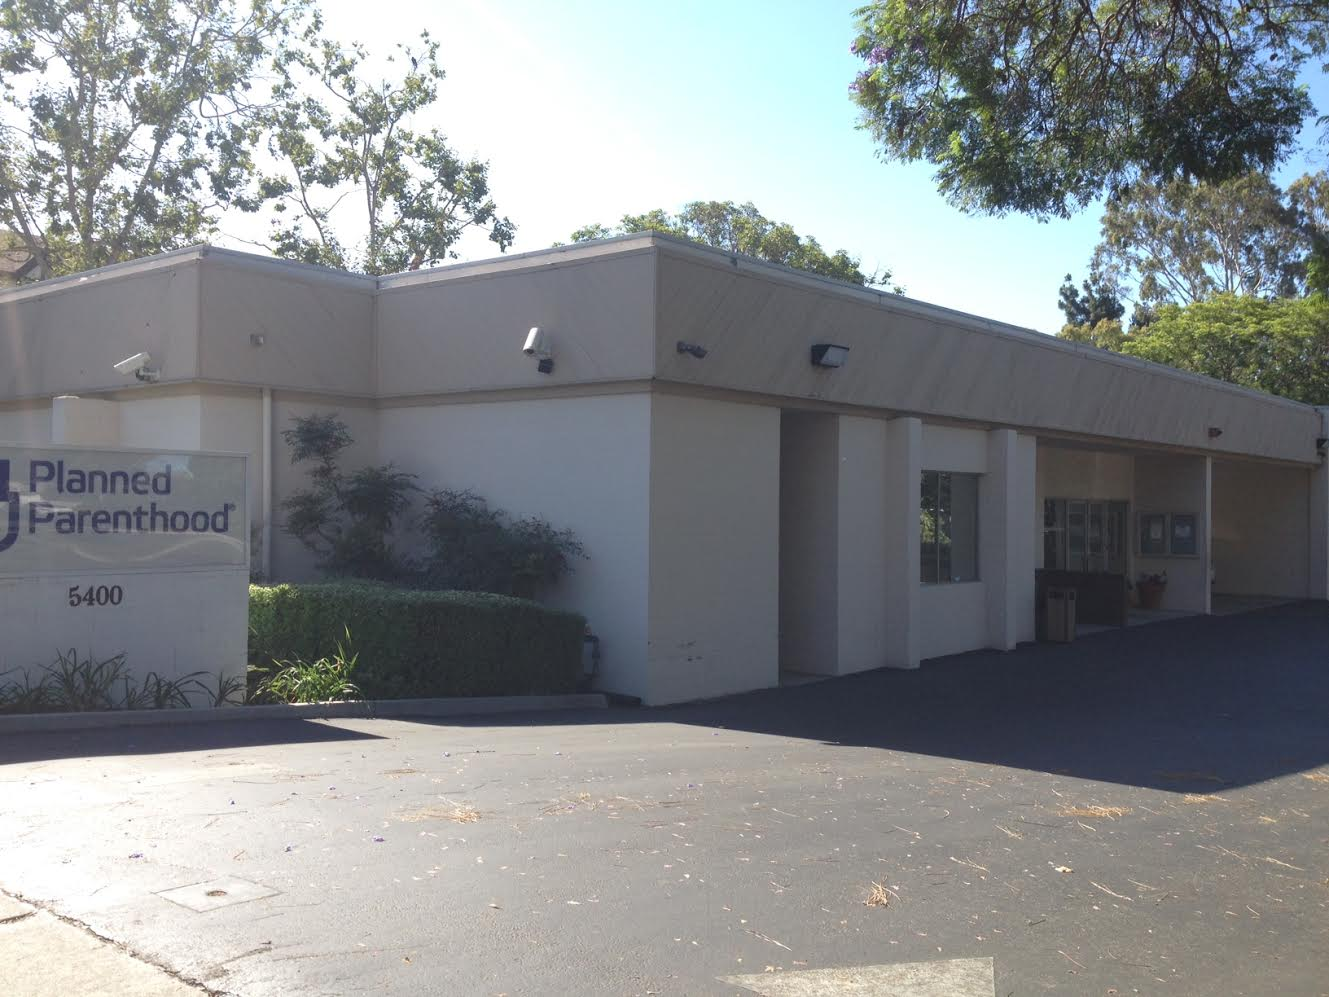 The Planned Parenthood abortion clinic on Ralston Street and Saratoga Avenue in Ventura.